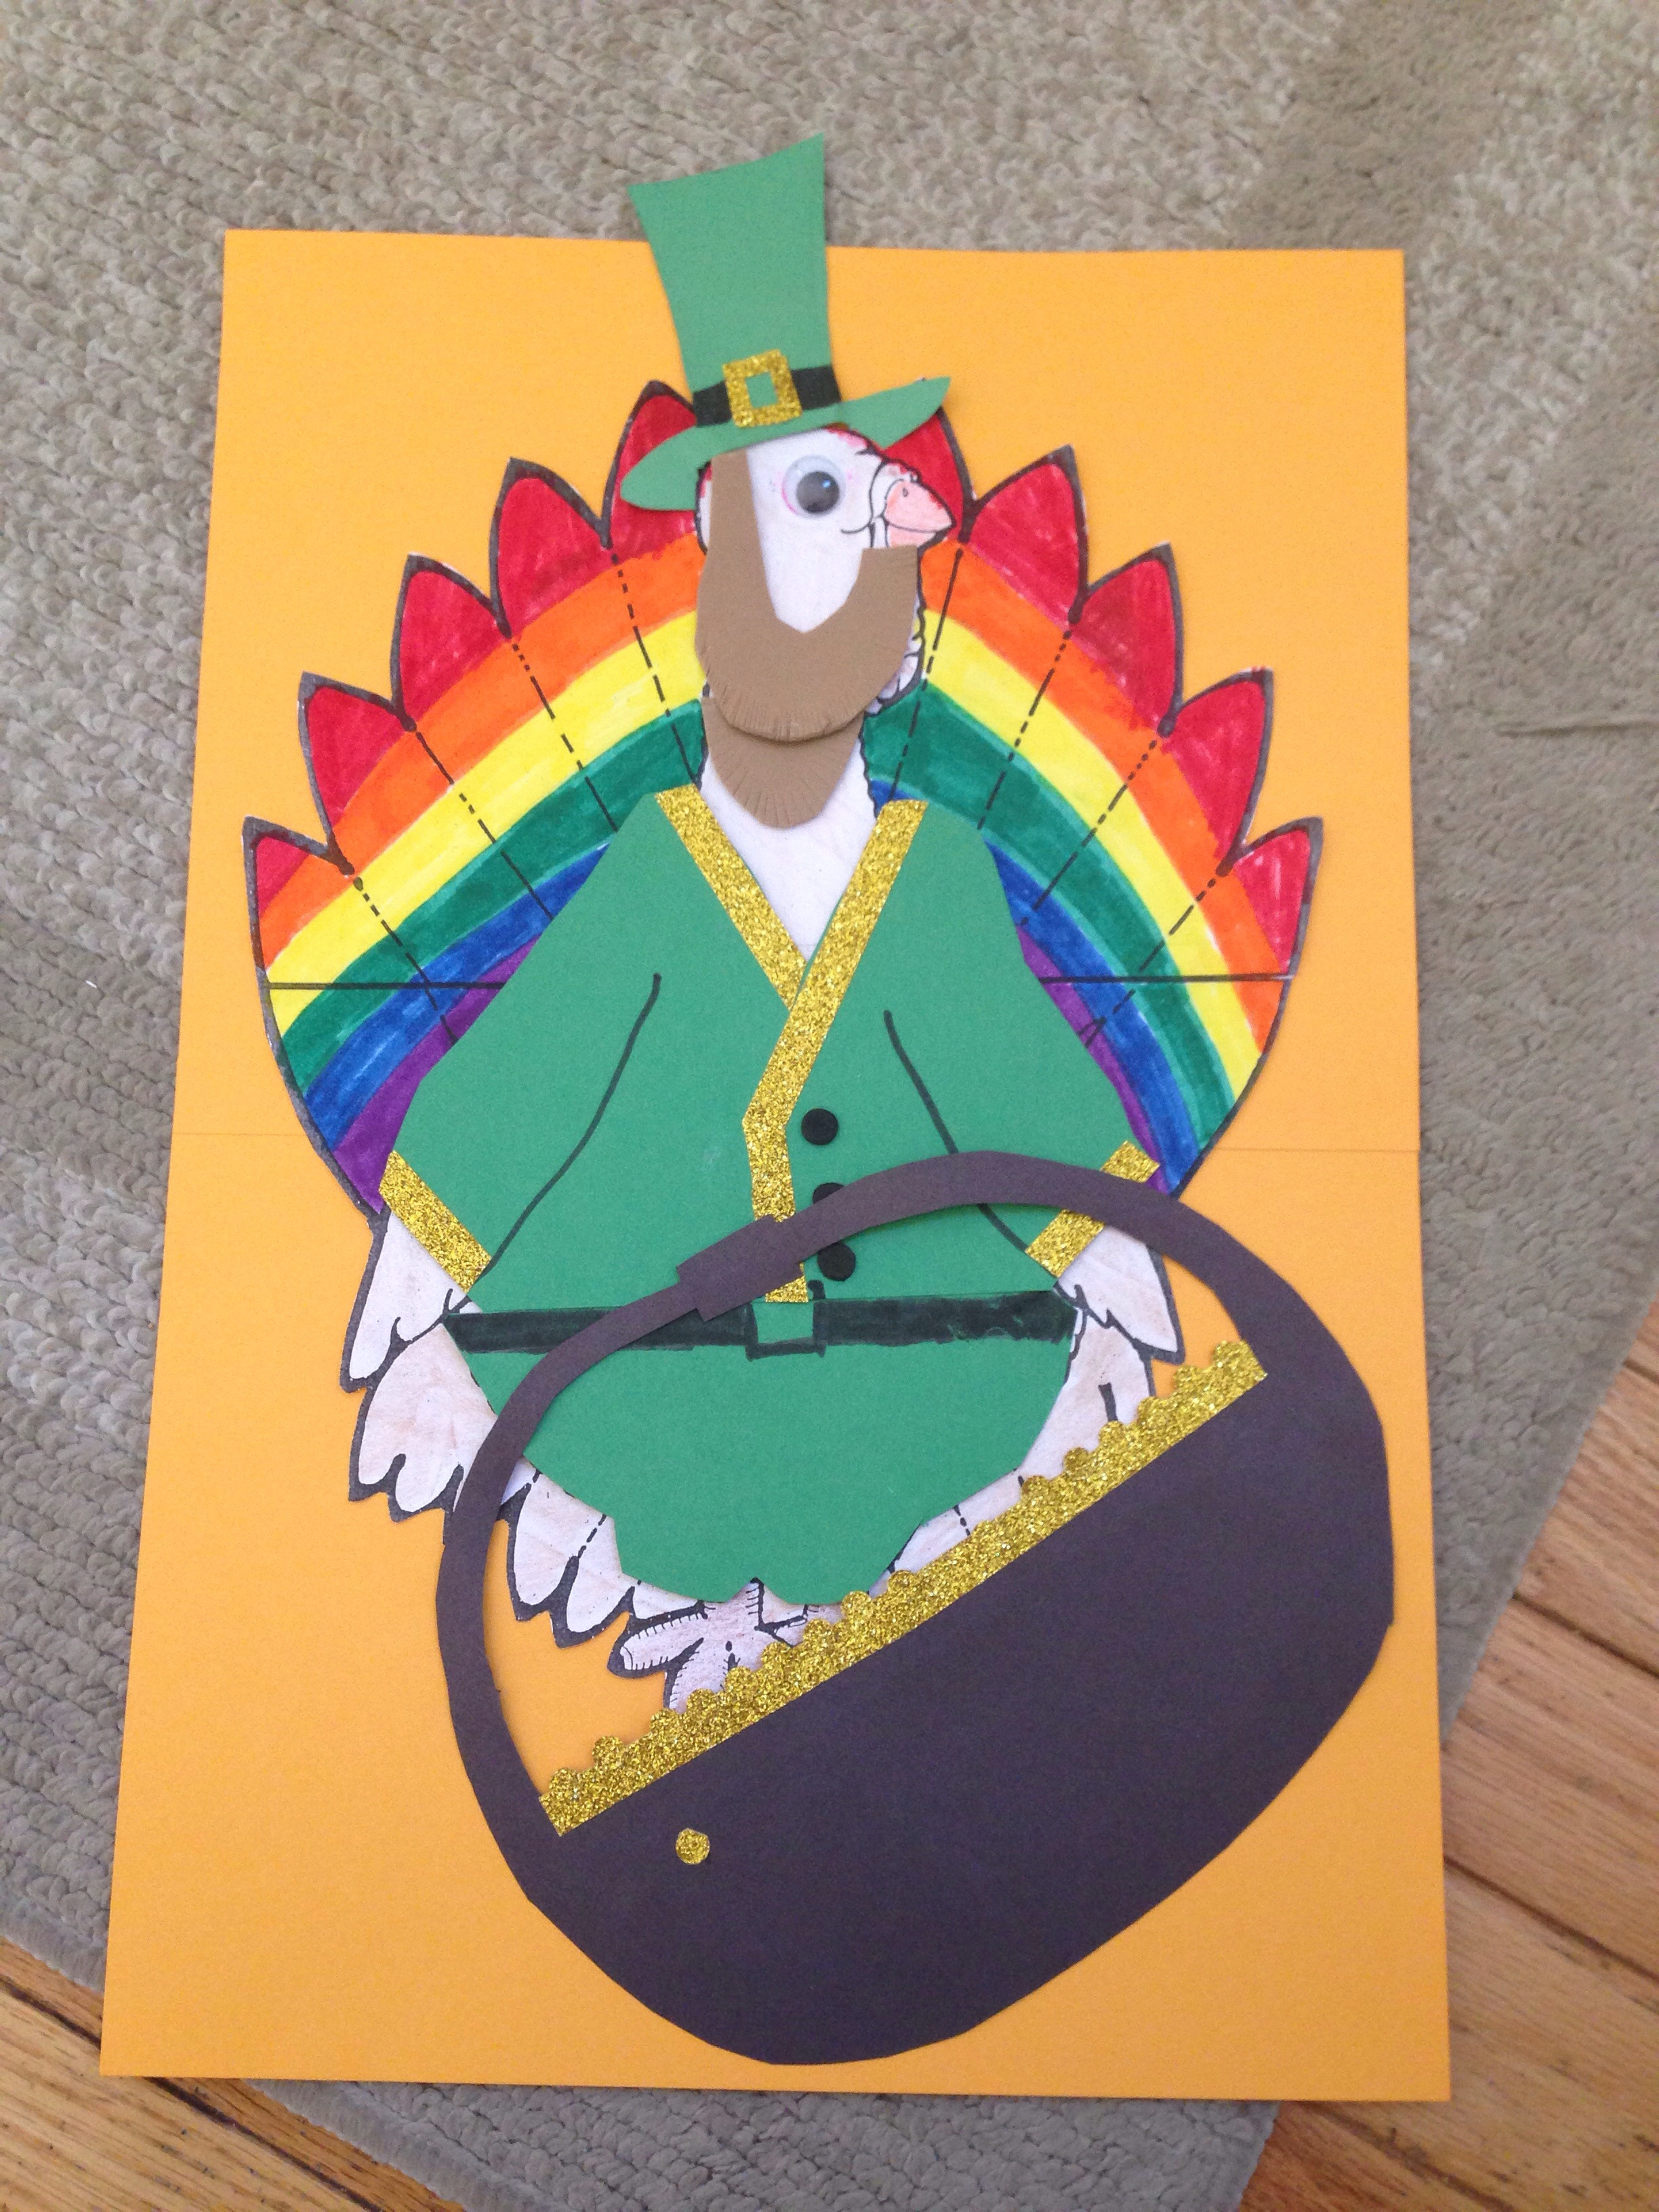 Turkey In Disguise School Project Ideas Mommies With Style